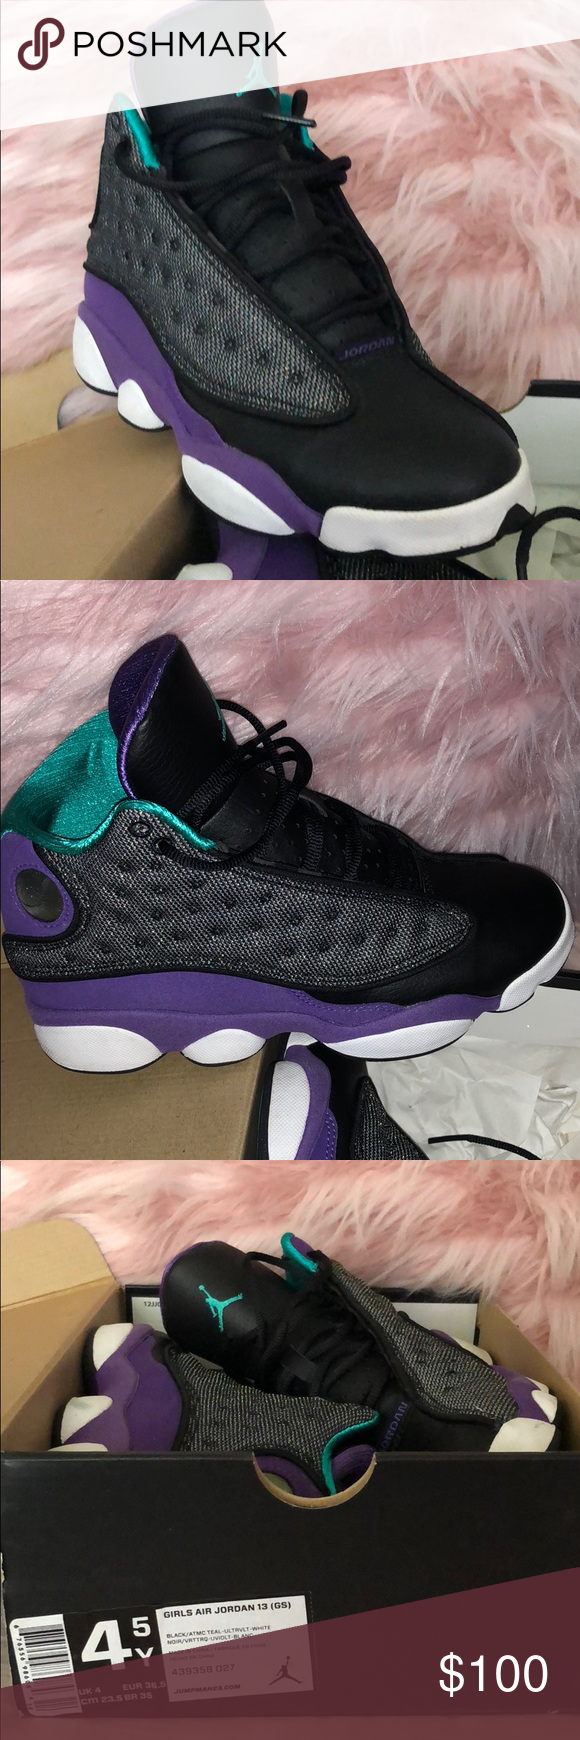 brand new 0a7c8 41e14 Air Jordan 13 Black Atomic Teal Ultra Violet White Dope Air Jordan 13 s in  Teal Black  Violet. Size 4.5 in boys. Equal to size 6.5 in Women Air Jordan  Shoes ...